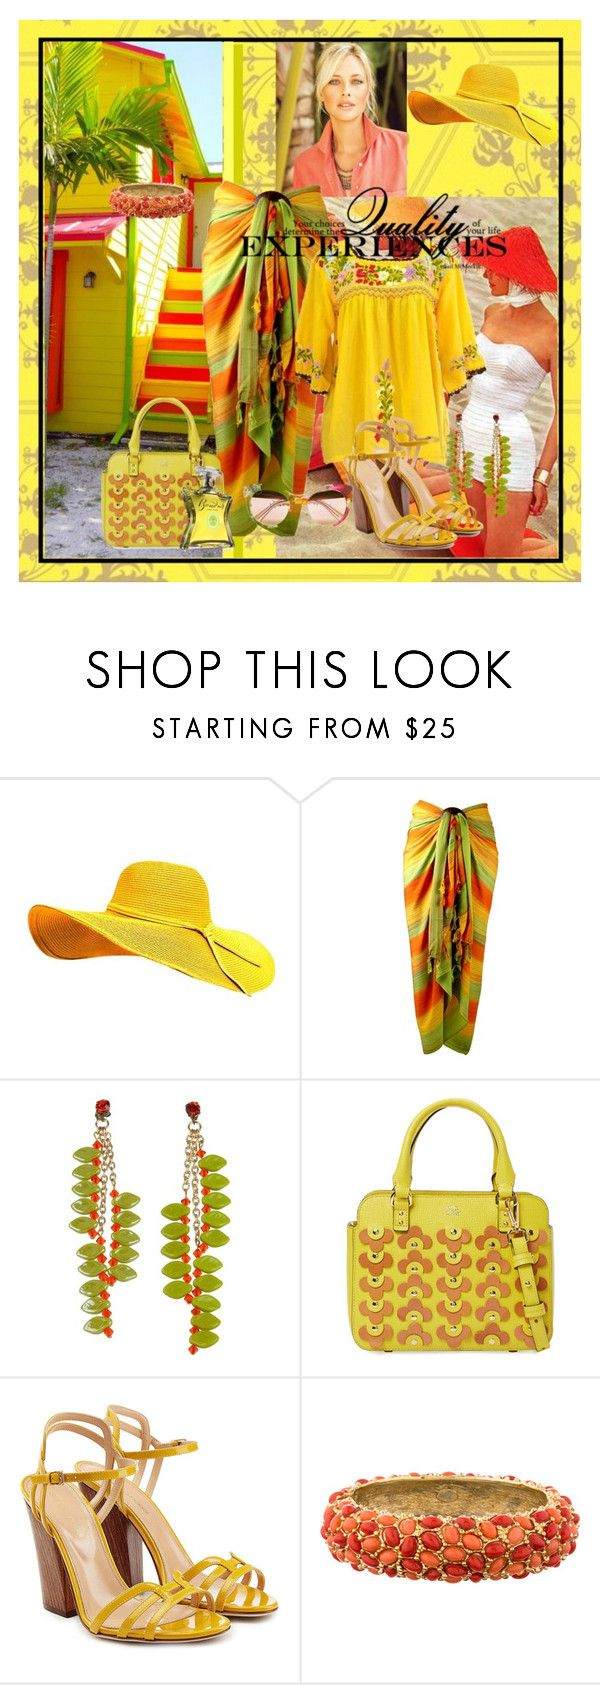 """""""Yellow Peasant Top, Tropical Colors & background"""" by franceseattle ❤ liked on Polyvore featuring Graham & Brown, James Murray, Orla Kiely, Sergio Rossi, Kenneth Jay Lane, Bond No. 9 and Gucci"""